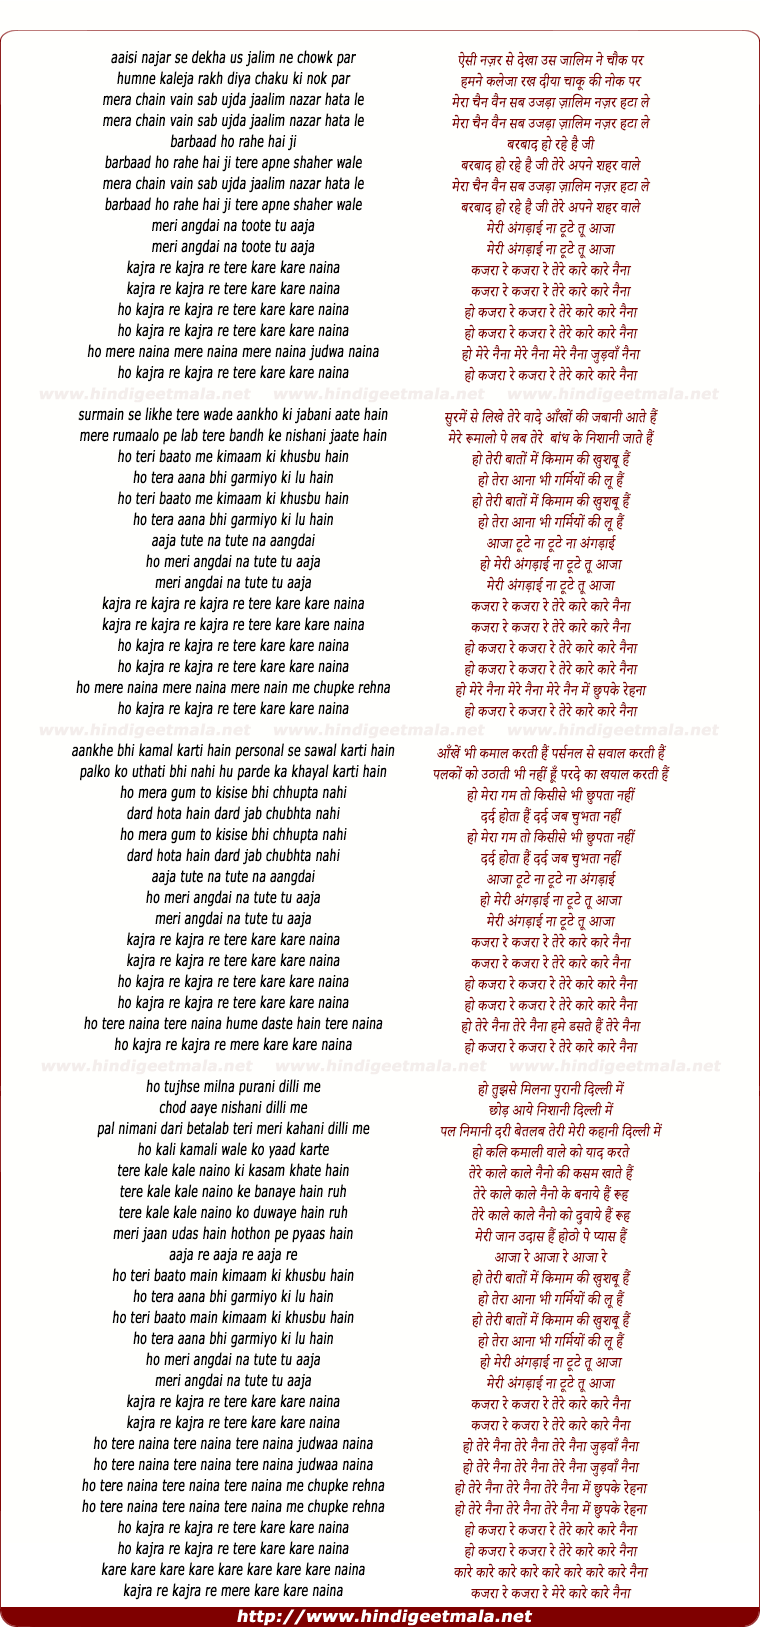 lyrics of song Kajrare Kajrare